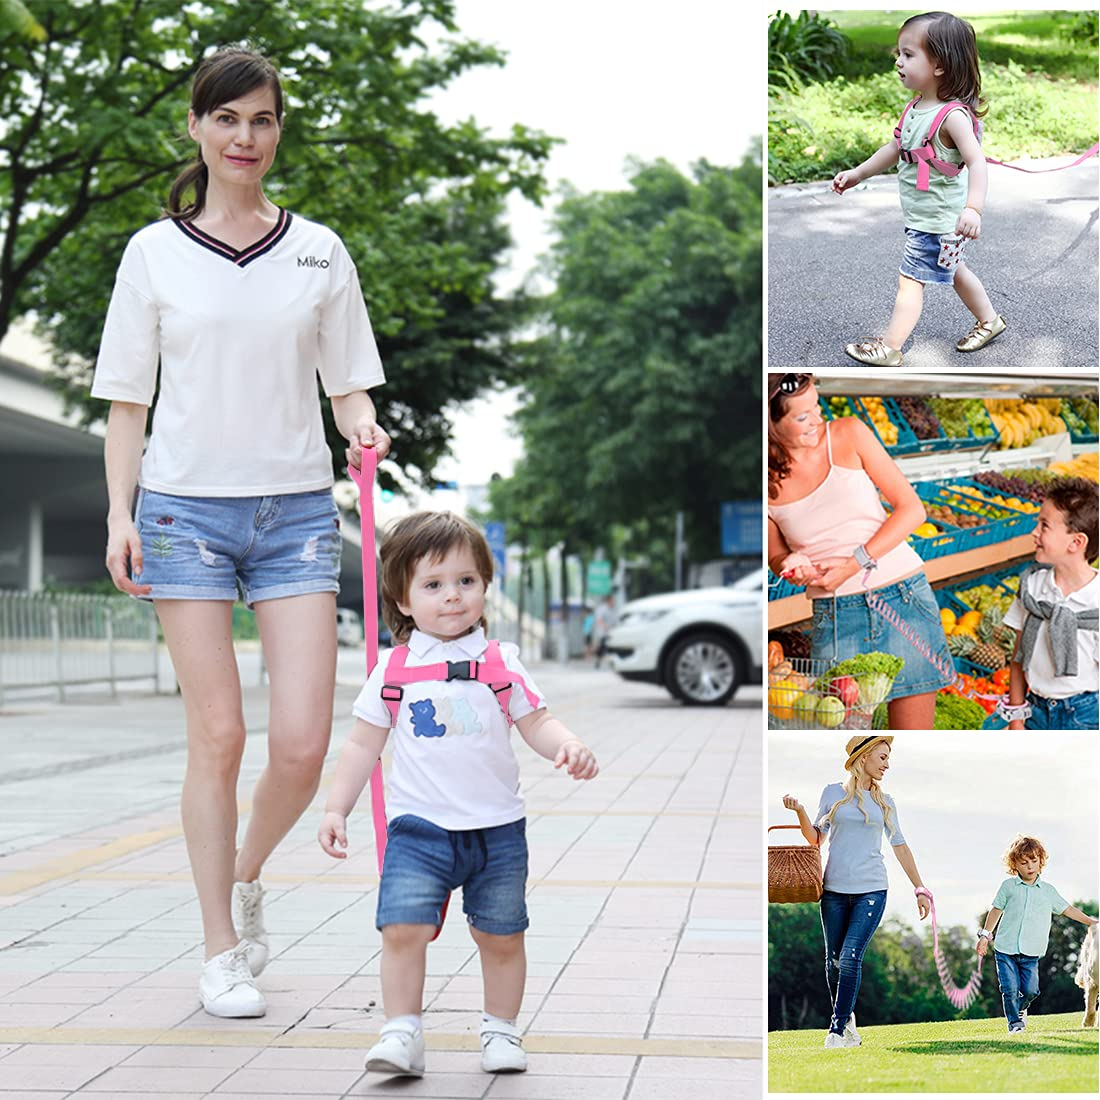 3 in 1 Toddler Harness Leashes + Anti Lost Wrist Link, Walking Wristband Safety Backpack for Toddlers, Child Anti Lost Leash Baby Cute Assistant Strap Belt for Kids Girls Outdoor Activity (Butterfly)